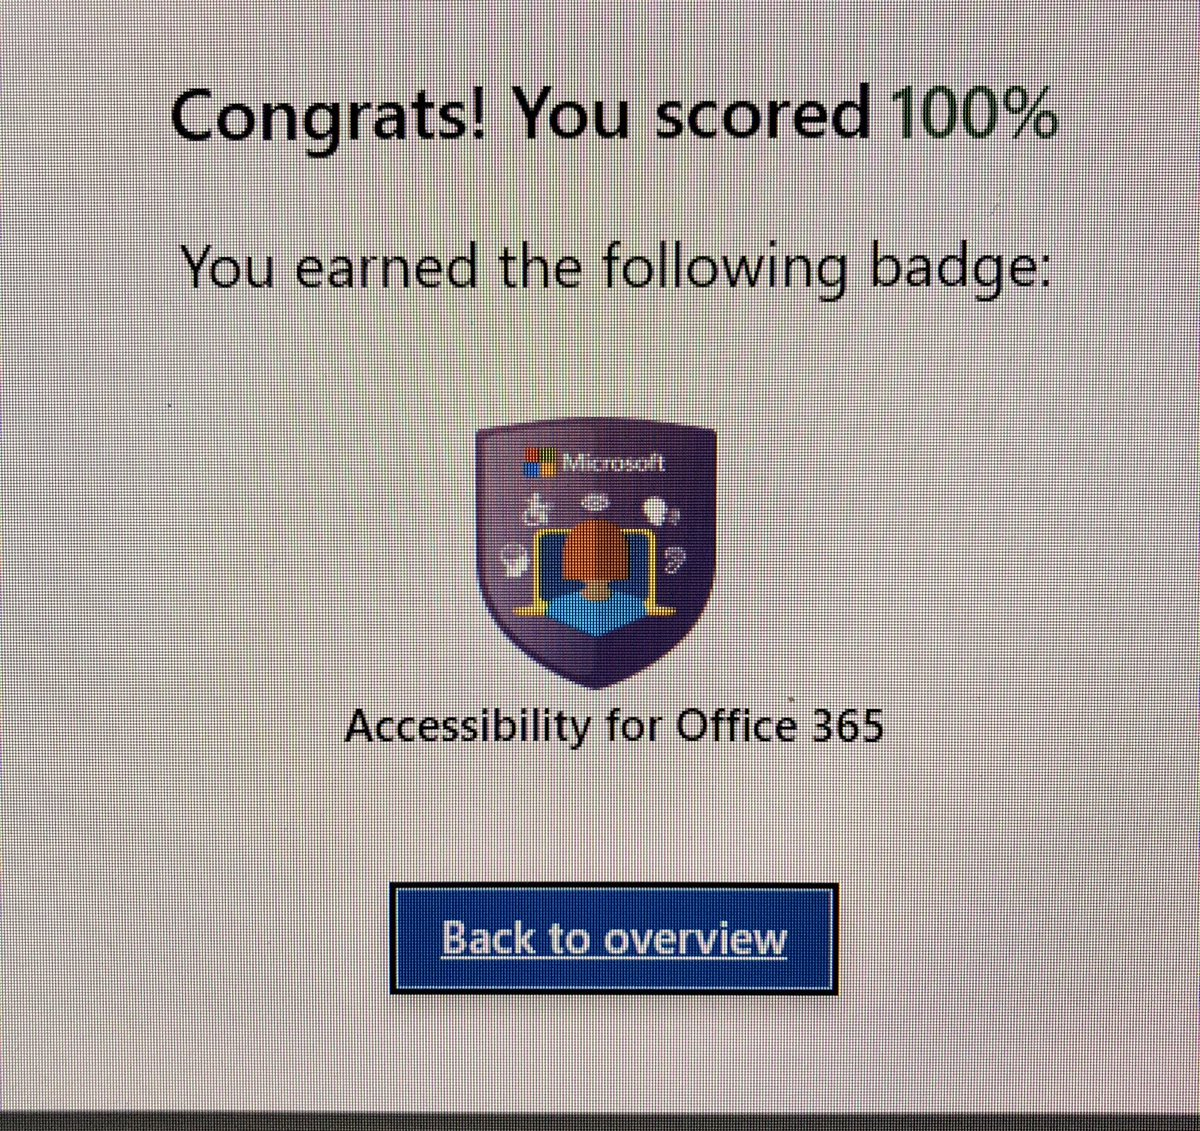 @woythaler #CCSBInnovates Just completed the Training Teachers to Author Accessible Content @MicrosoftEDU